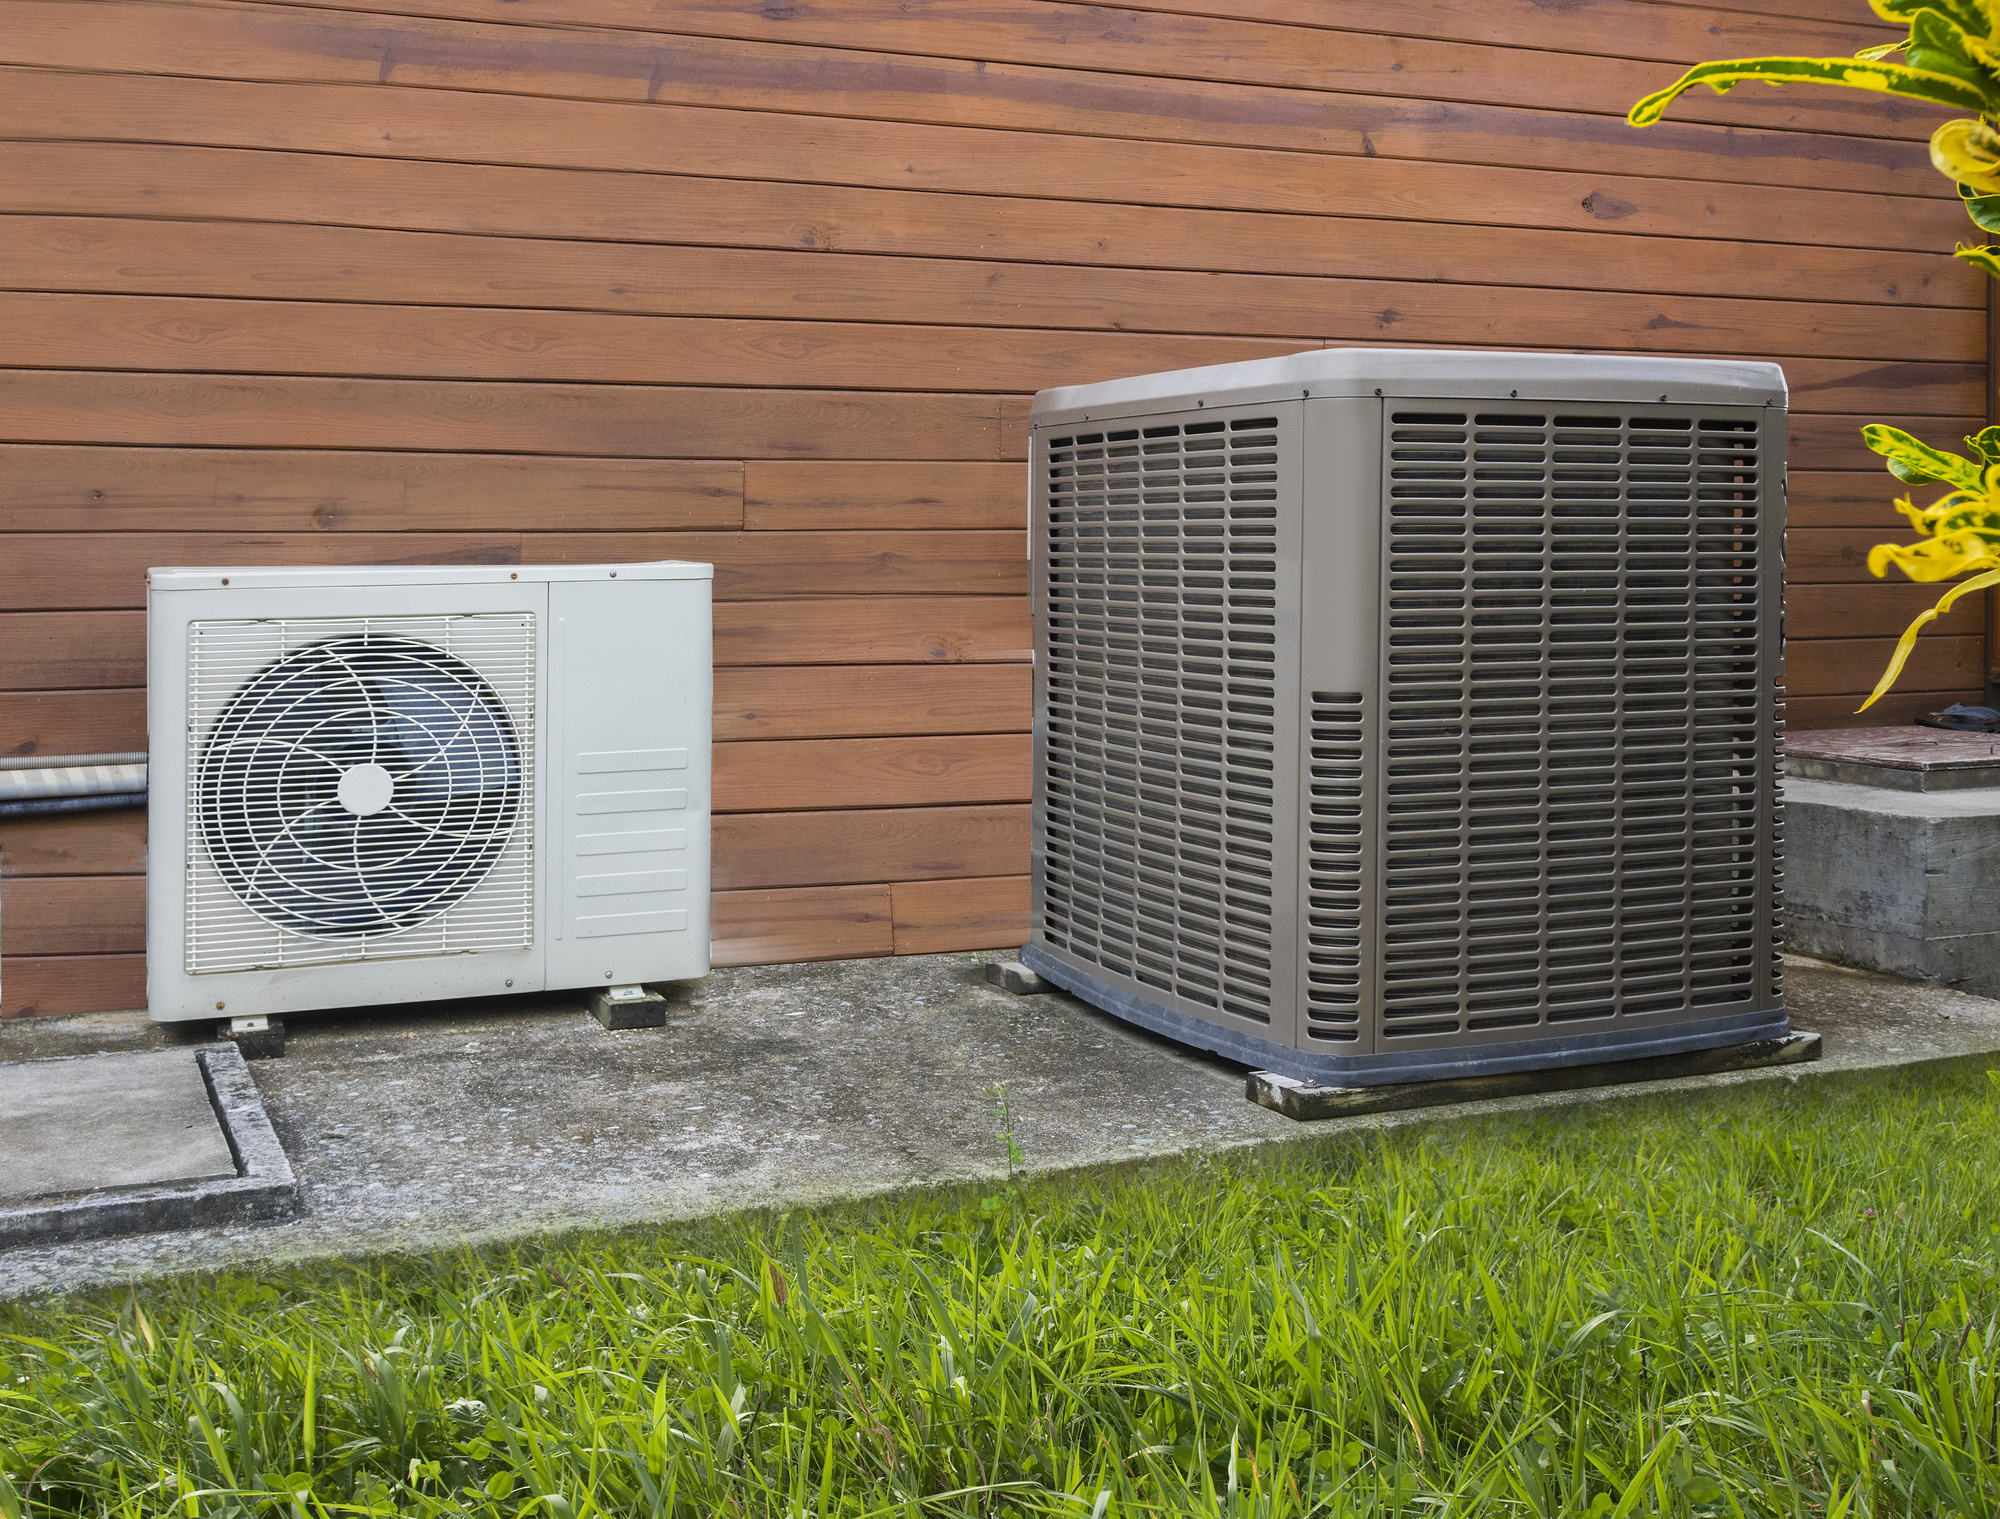 6 Signs You Need an HVAC Upgrade Stat